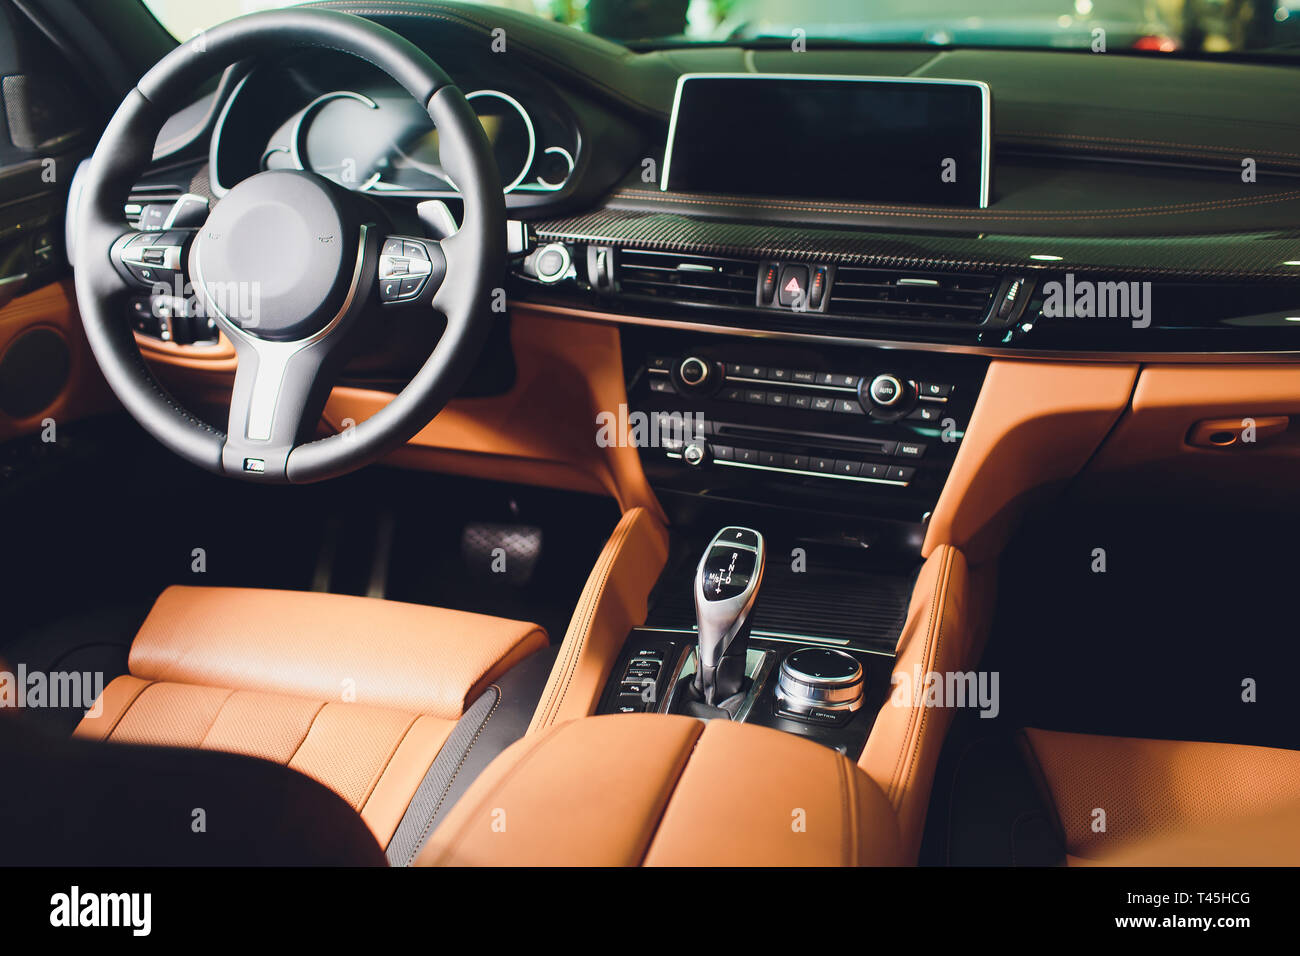 Modern Luxury car inside. Interior of prestige modern car. Comfortable leather brown seats. Orange perforated leather cockpit. - Stock Image